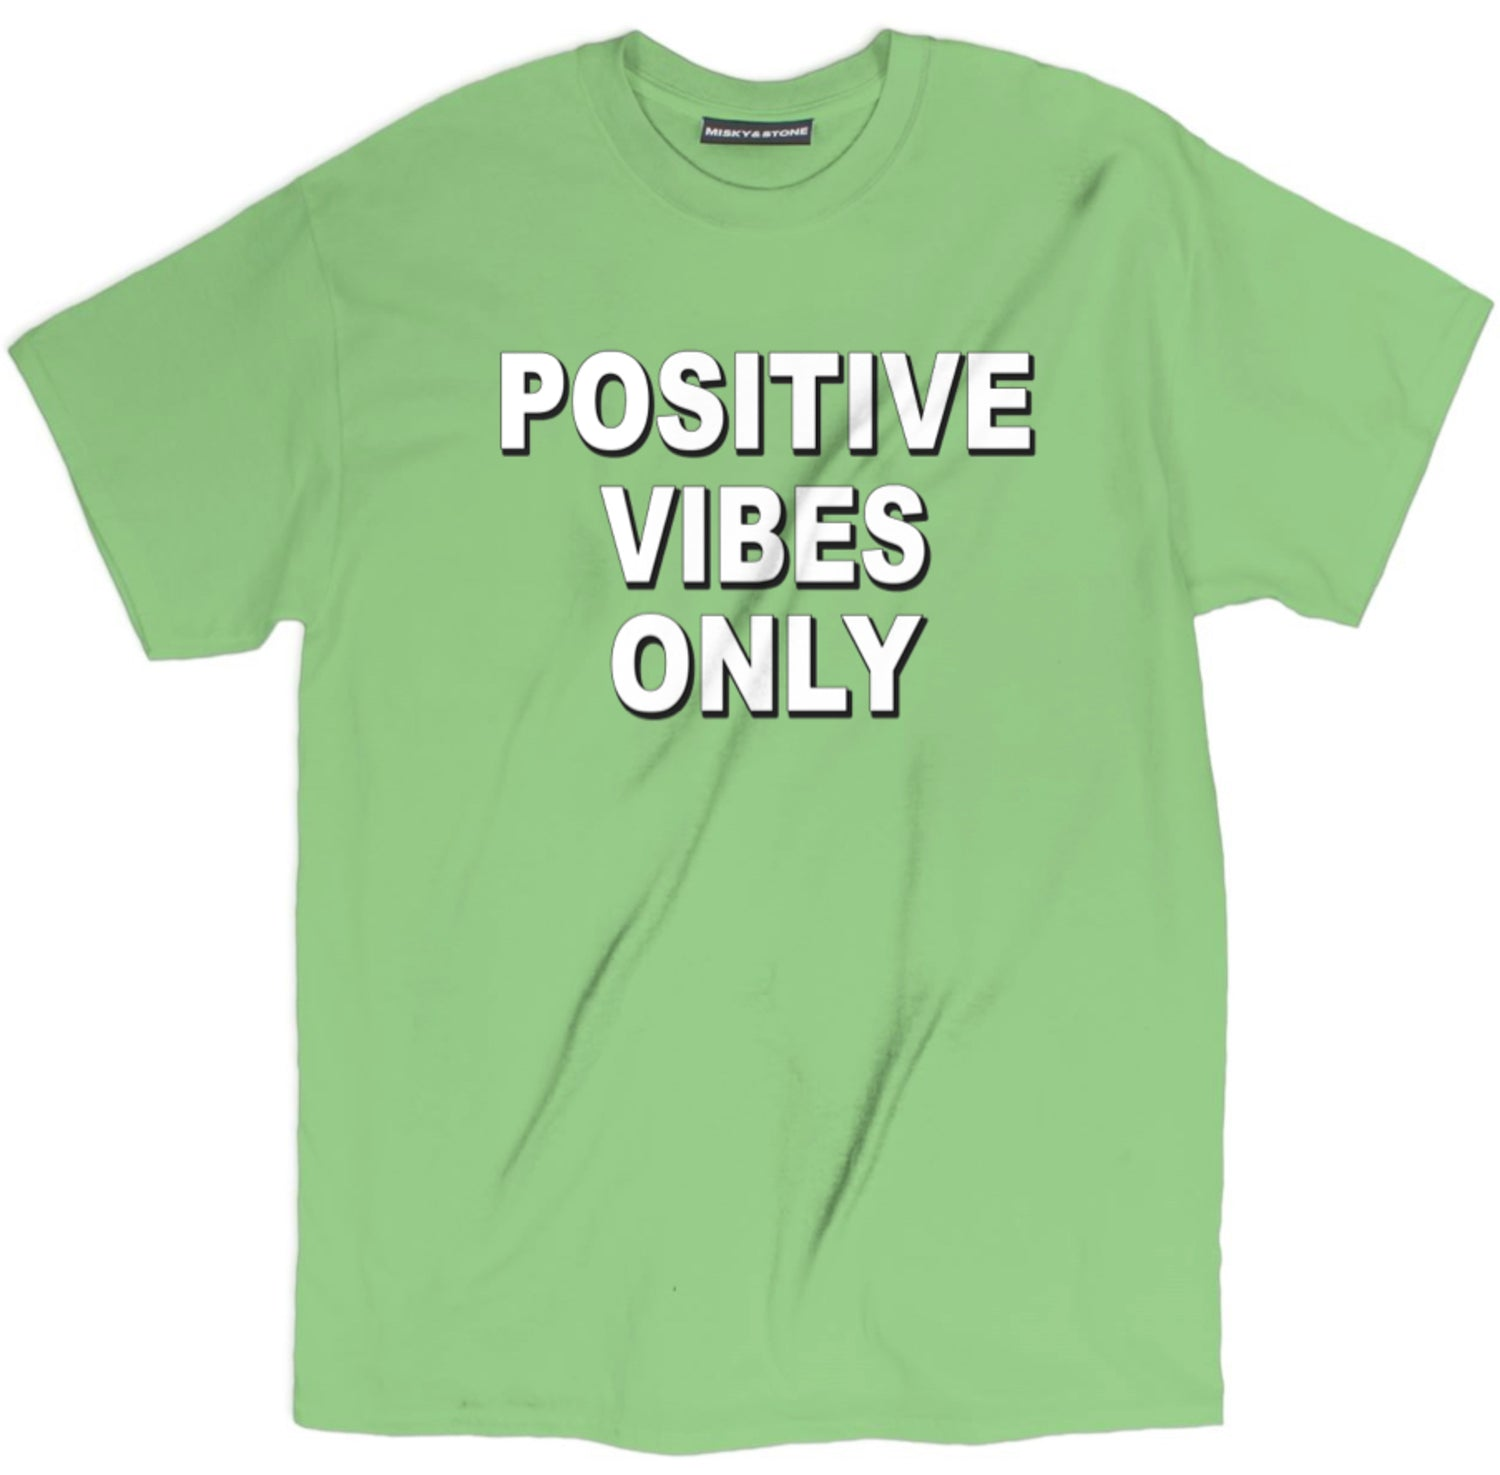 positive vibes only shirt, good vibes shirt, good vibes only shirt, good vibes tee, good vibes t shirt, good vibes only t shirt, good vibes tee shirt, positive vibes only shirt, vibes shirt, good vibes only clothing, good vibes clothing,